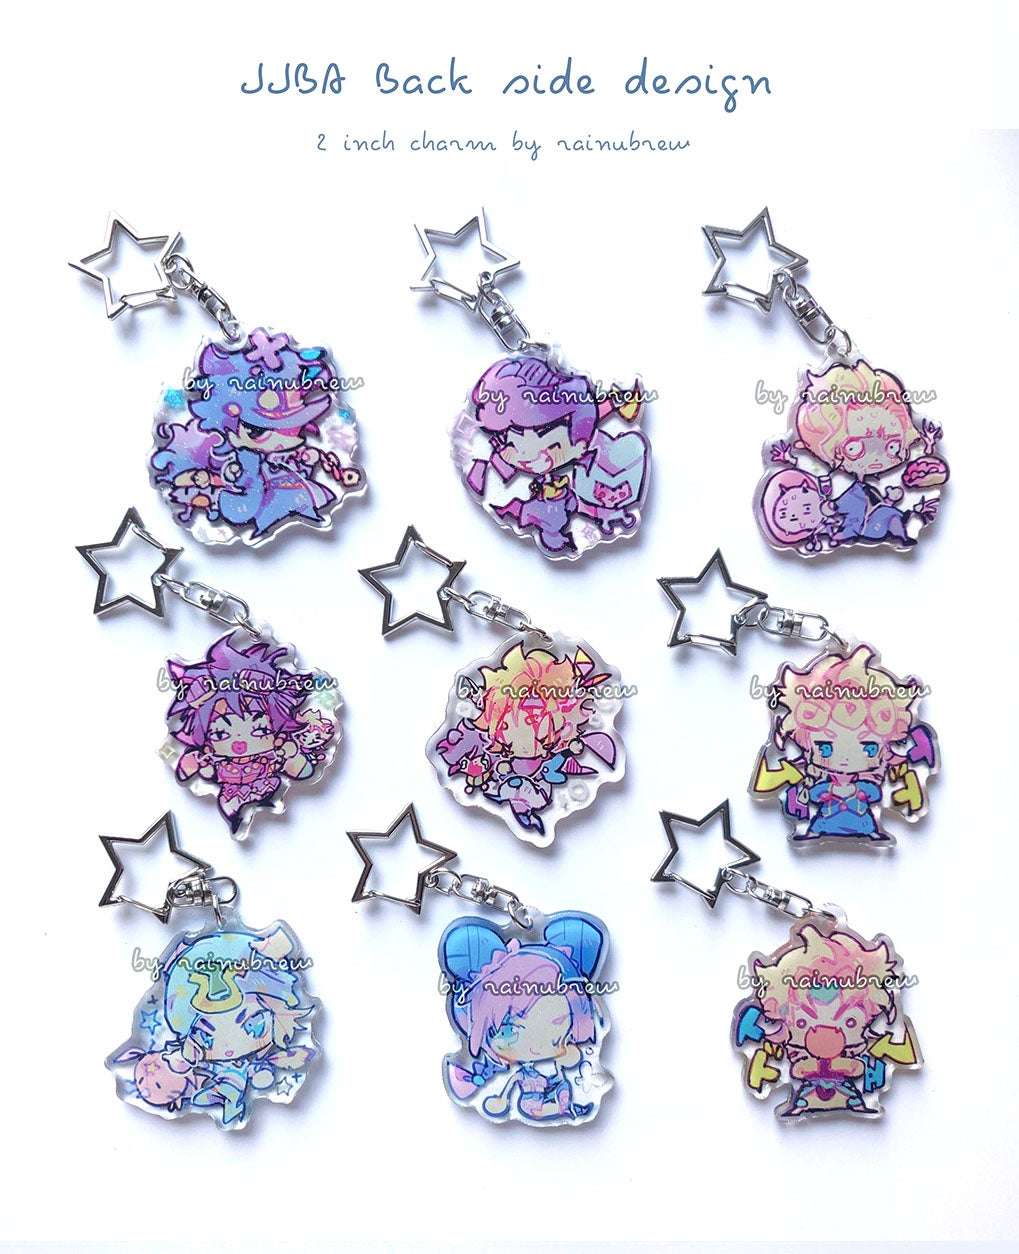 Image of Jojo JJBA | 2 inch charms